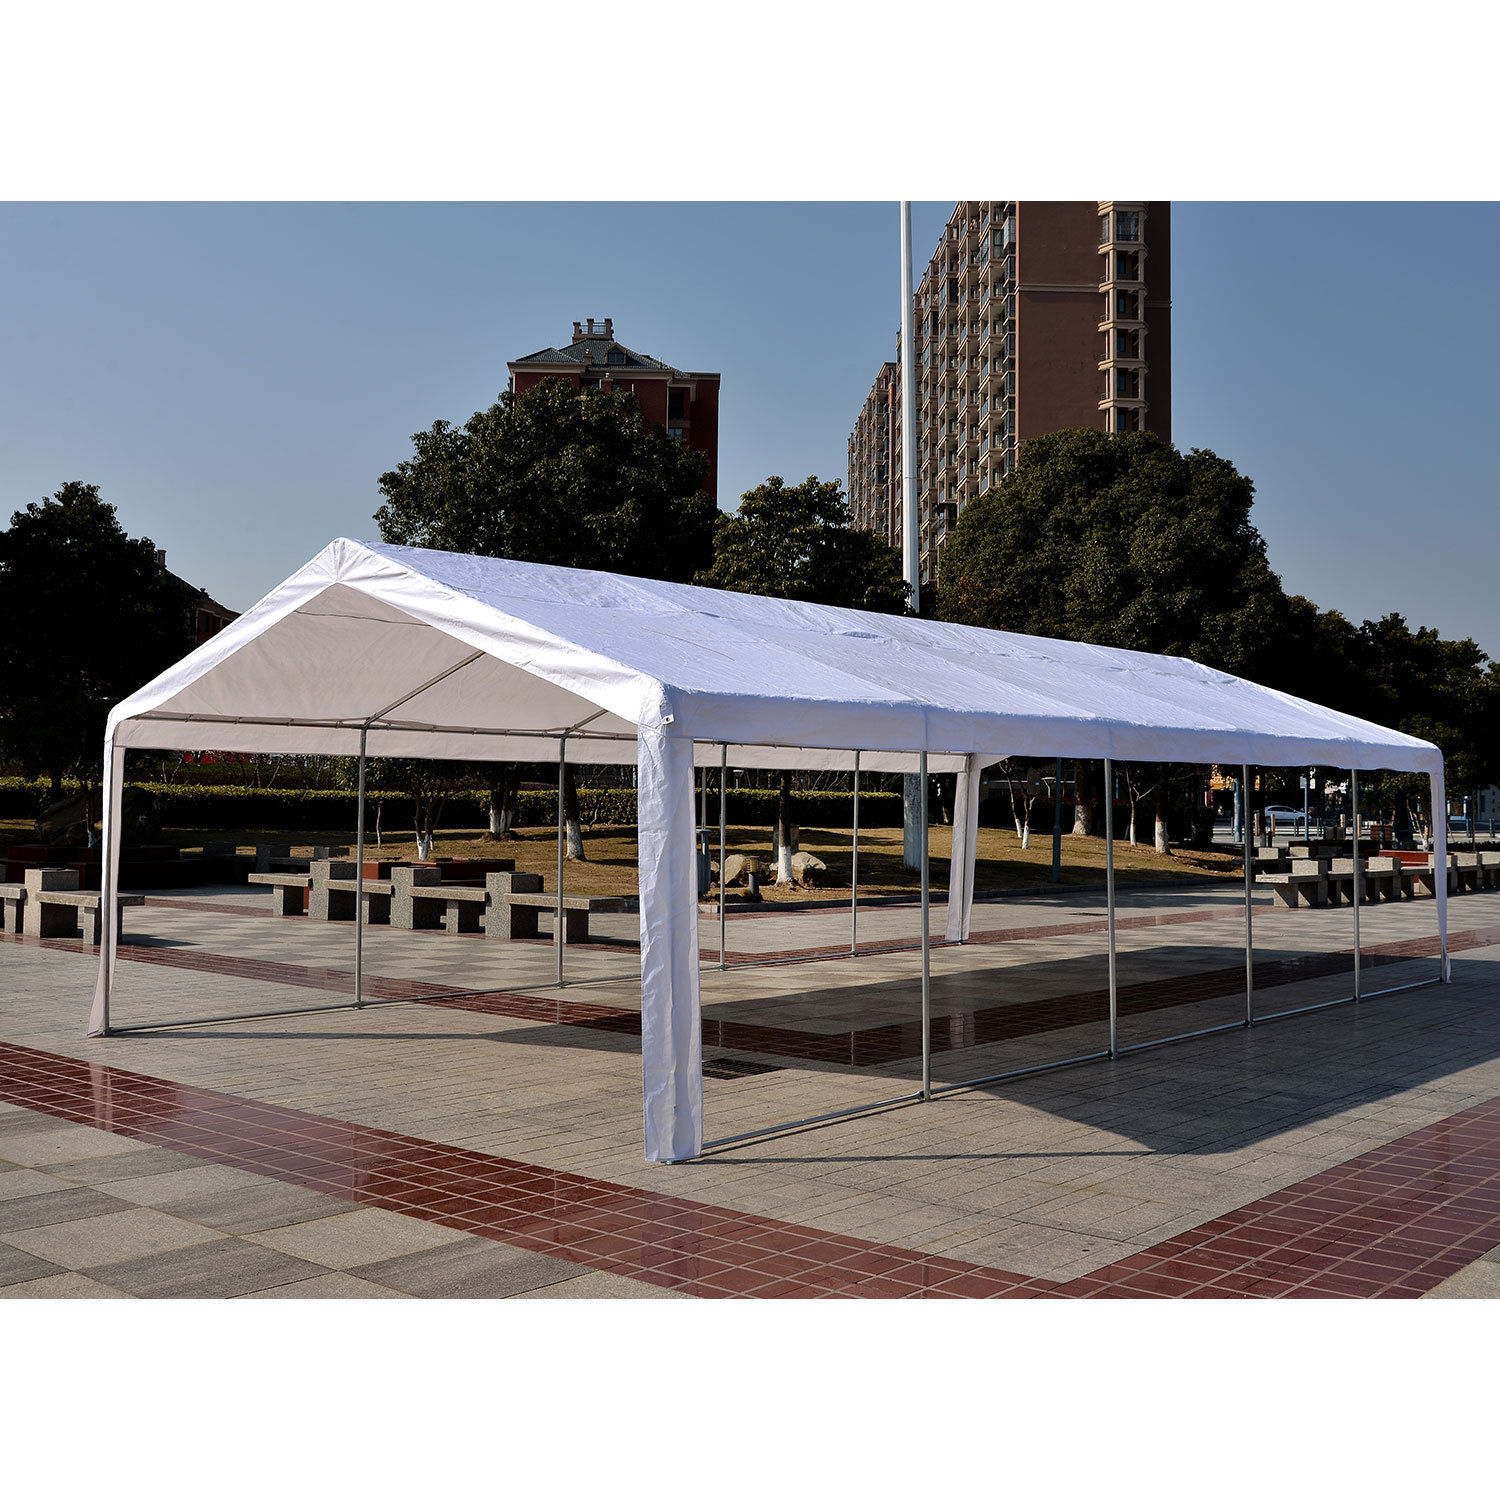 32 x 16 White Party Tent 3  sc 1 st  Wholesale Event Tents & 32 x 16 Heavy Duty White Party Tent Canopy Gazebo -